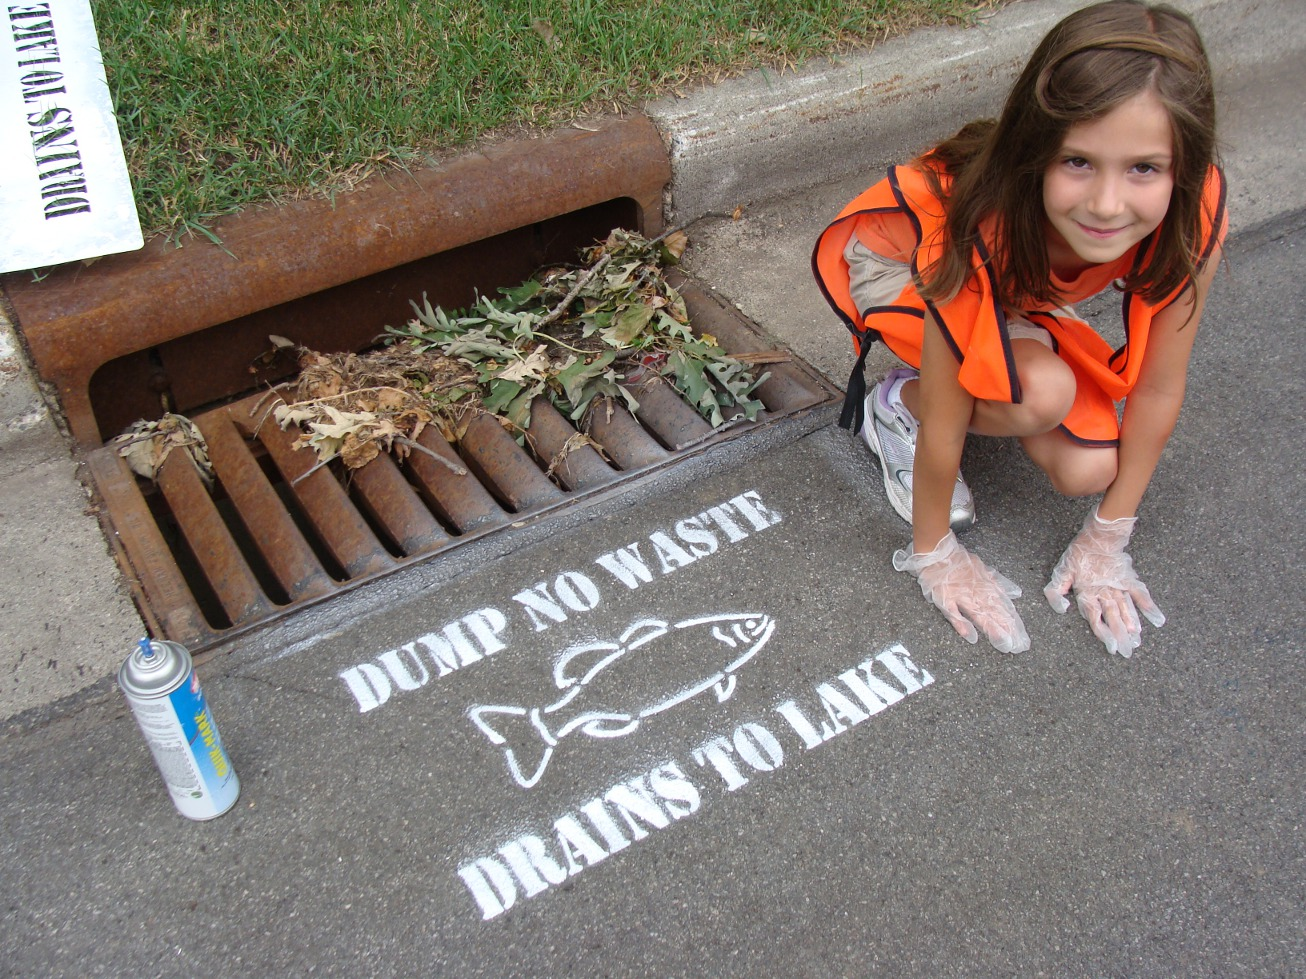 Dump No Waste Drains to Lake